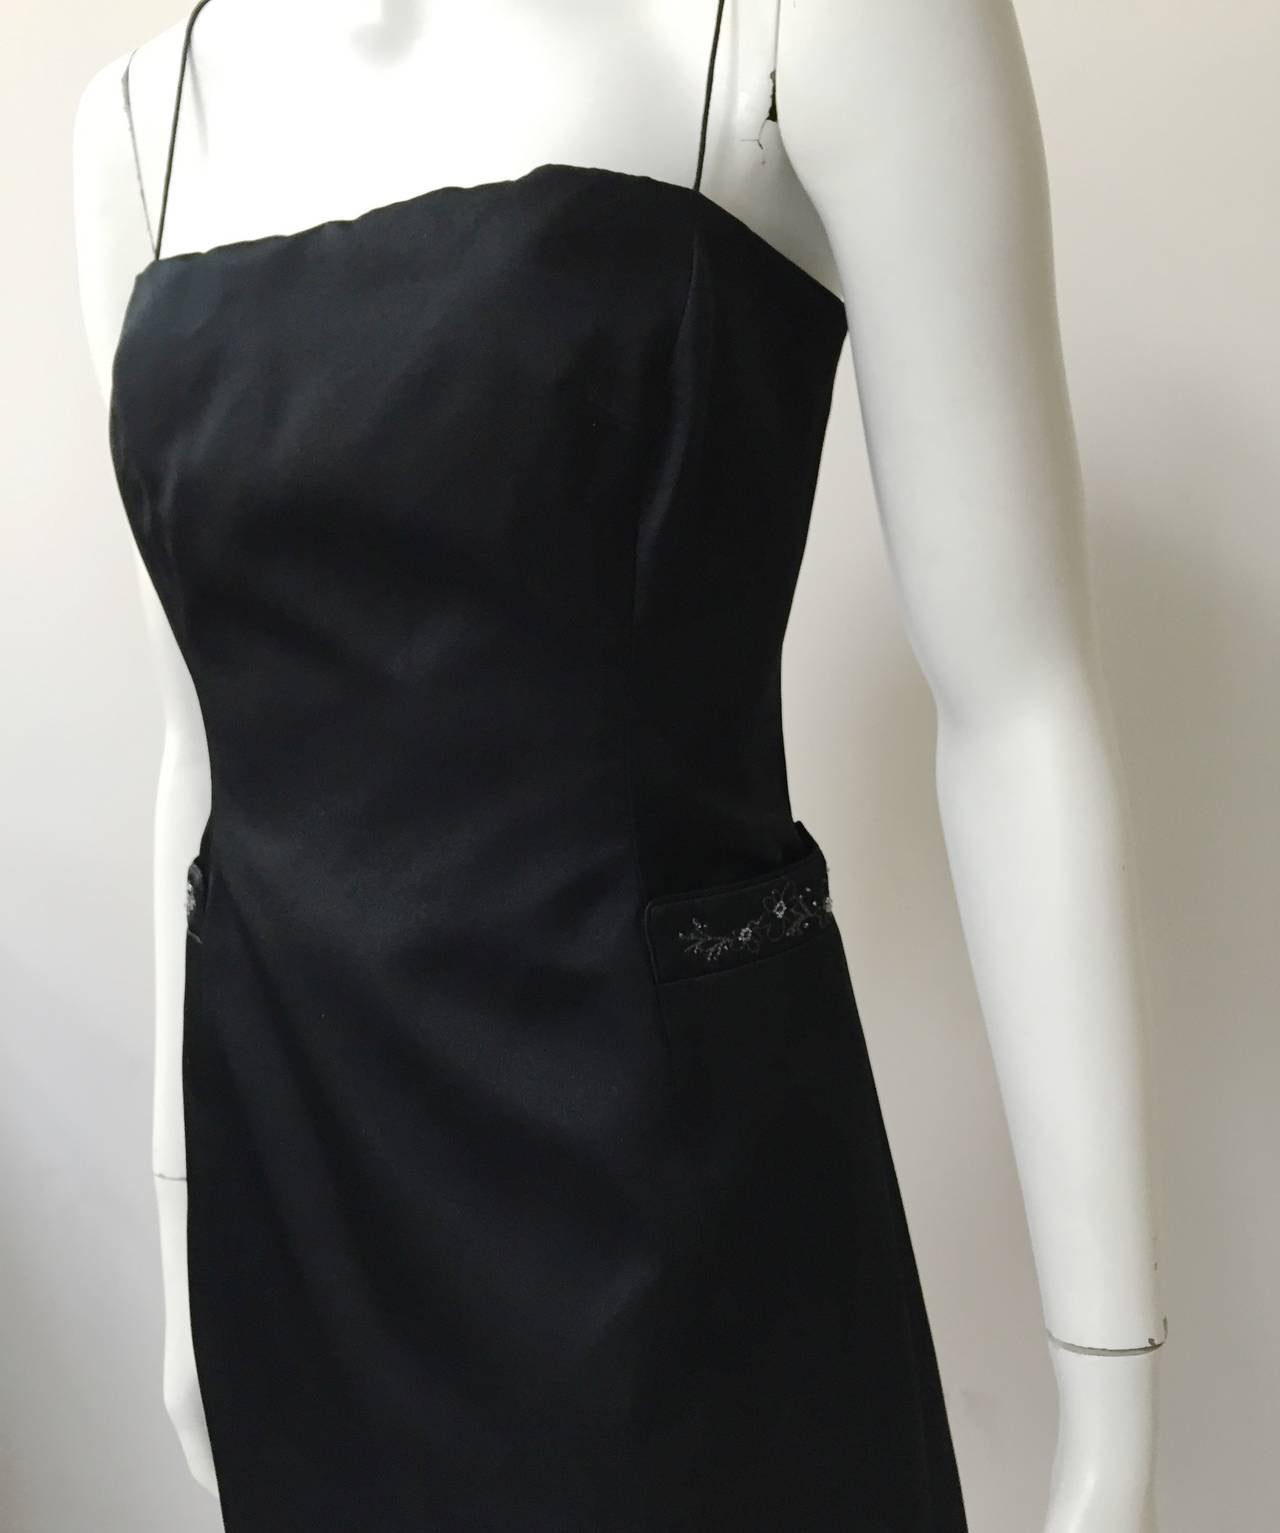 Women's Richard Tyler Couture Black Silk Dress Size 6. For Sale